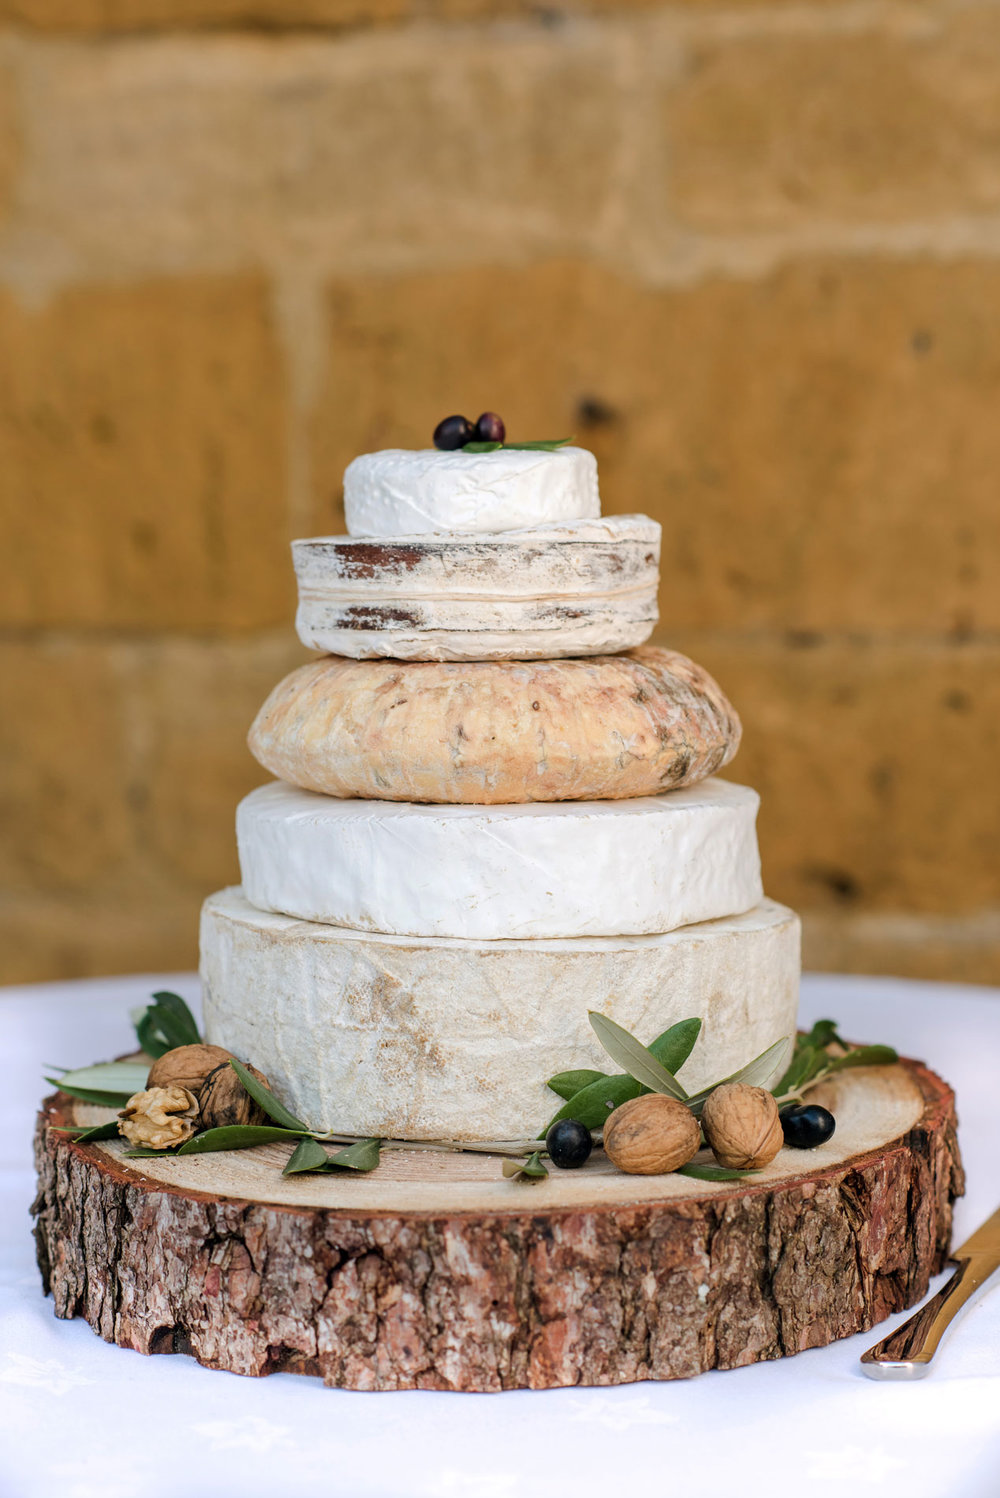 Cotswold-Cheese-Nov-2018-36.jpg